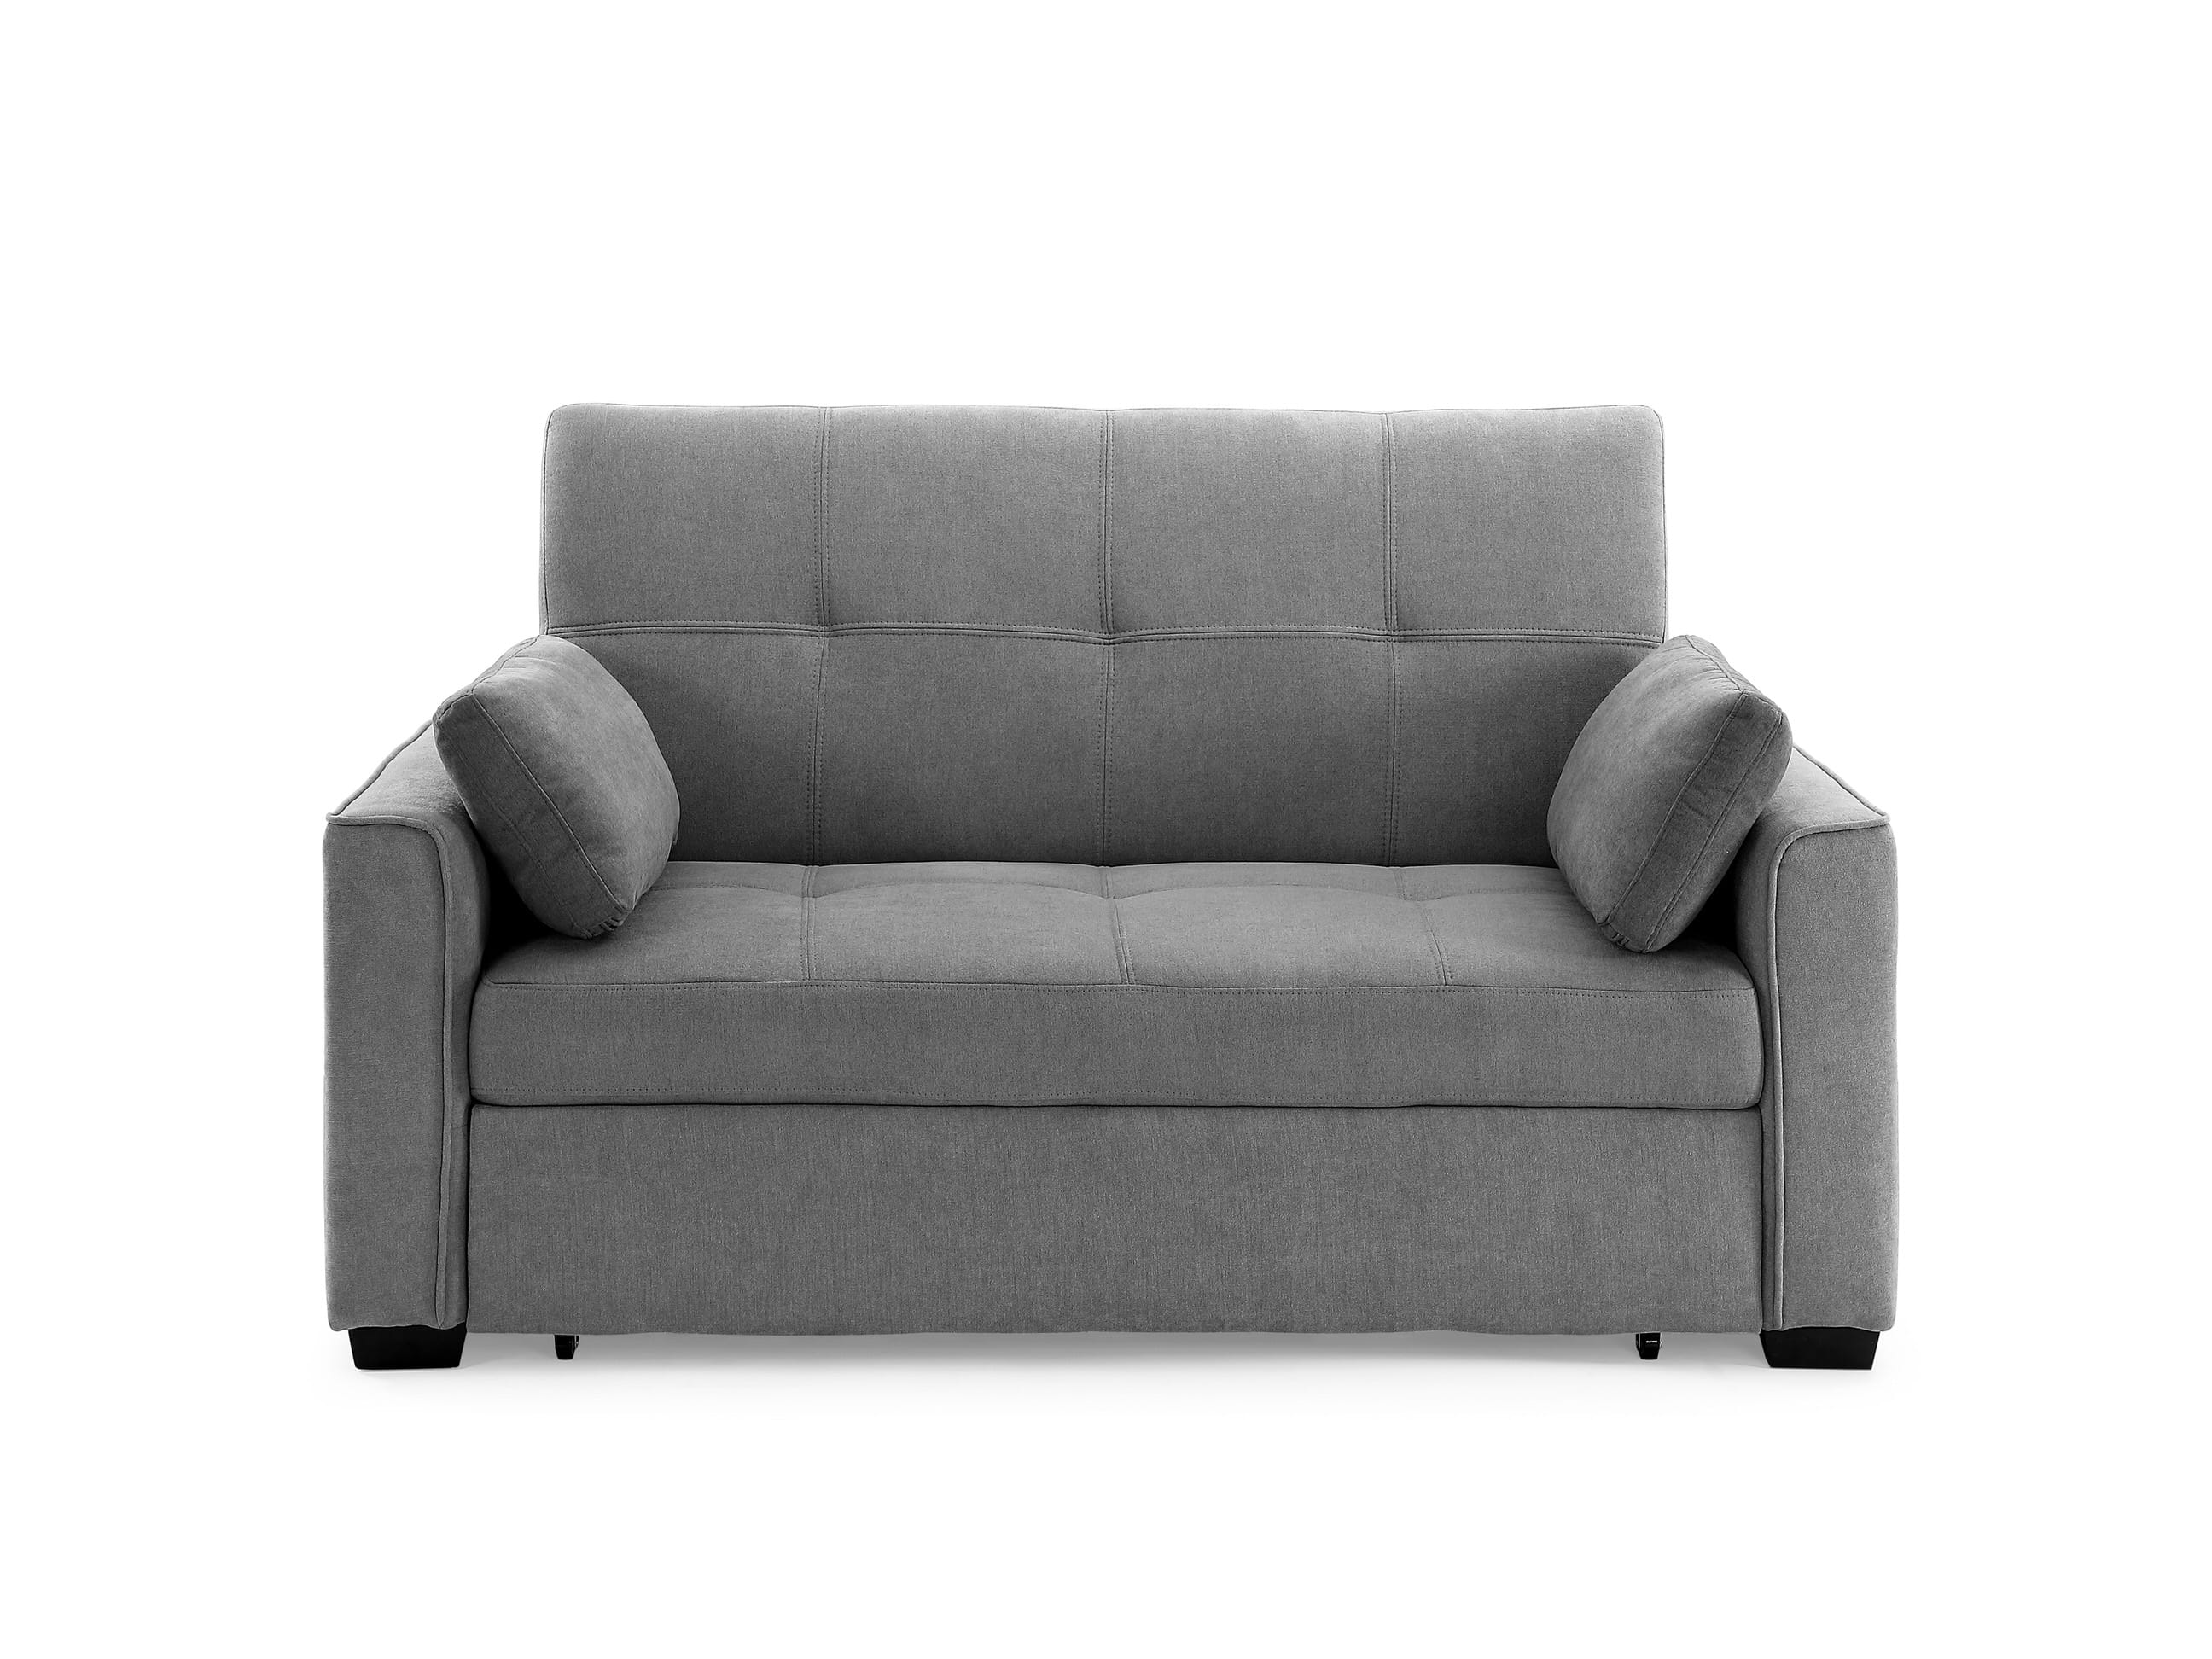 Sofa Beds Amsterdam Nantucket Loveseat Full Size Sleeper Light Gray By Night Day Furniture